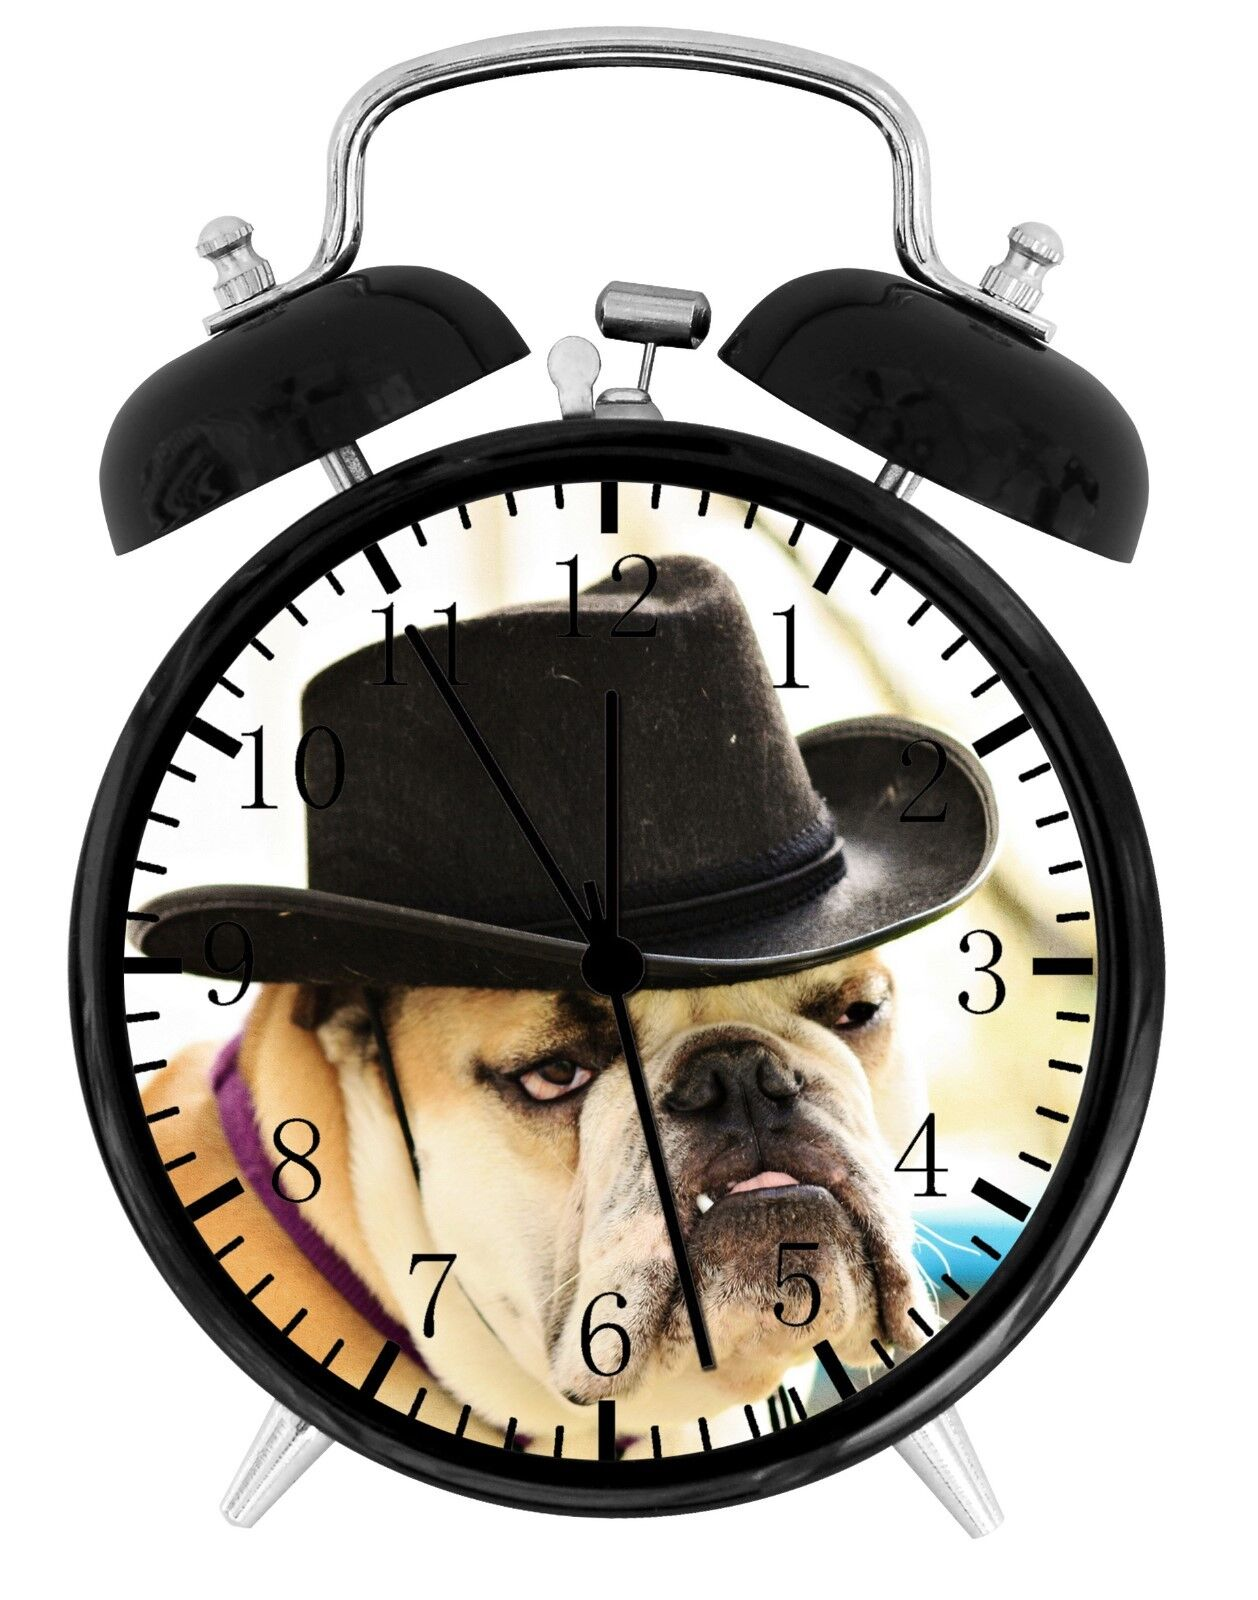 Cute Funny English Bull Dog Alarm Desk Clock Home or Office Decor F95 Nice Gift